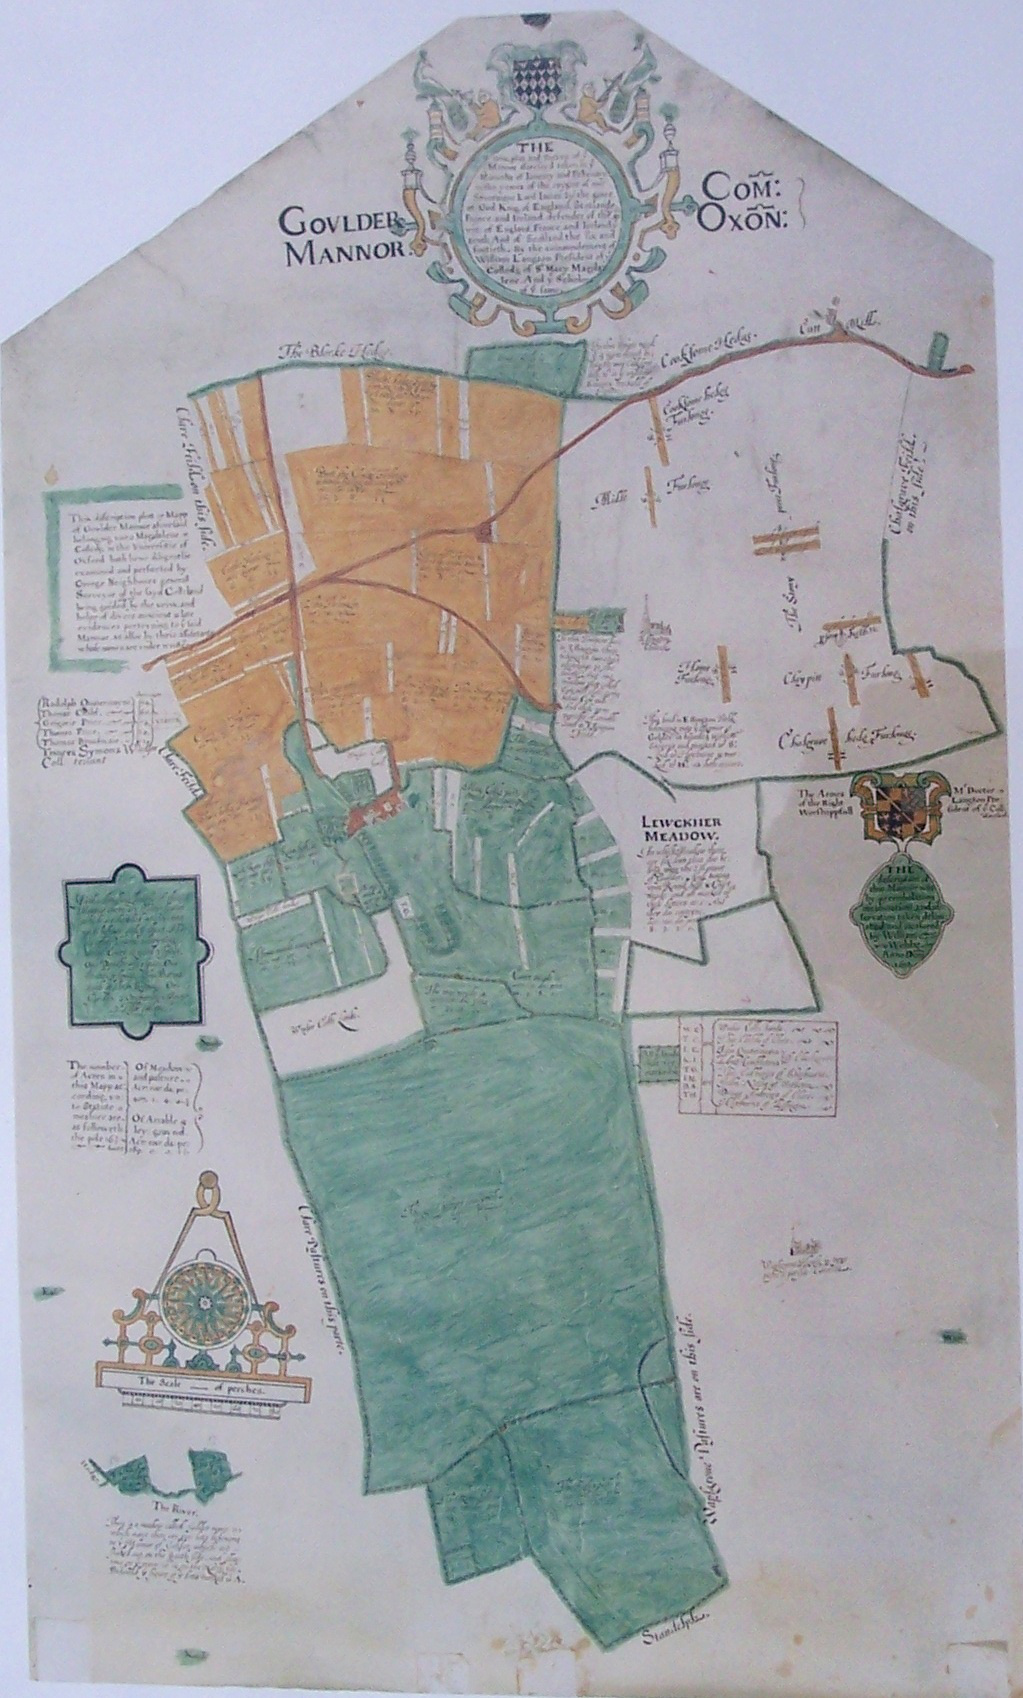 Webbs 1612 Map of Golder Manor